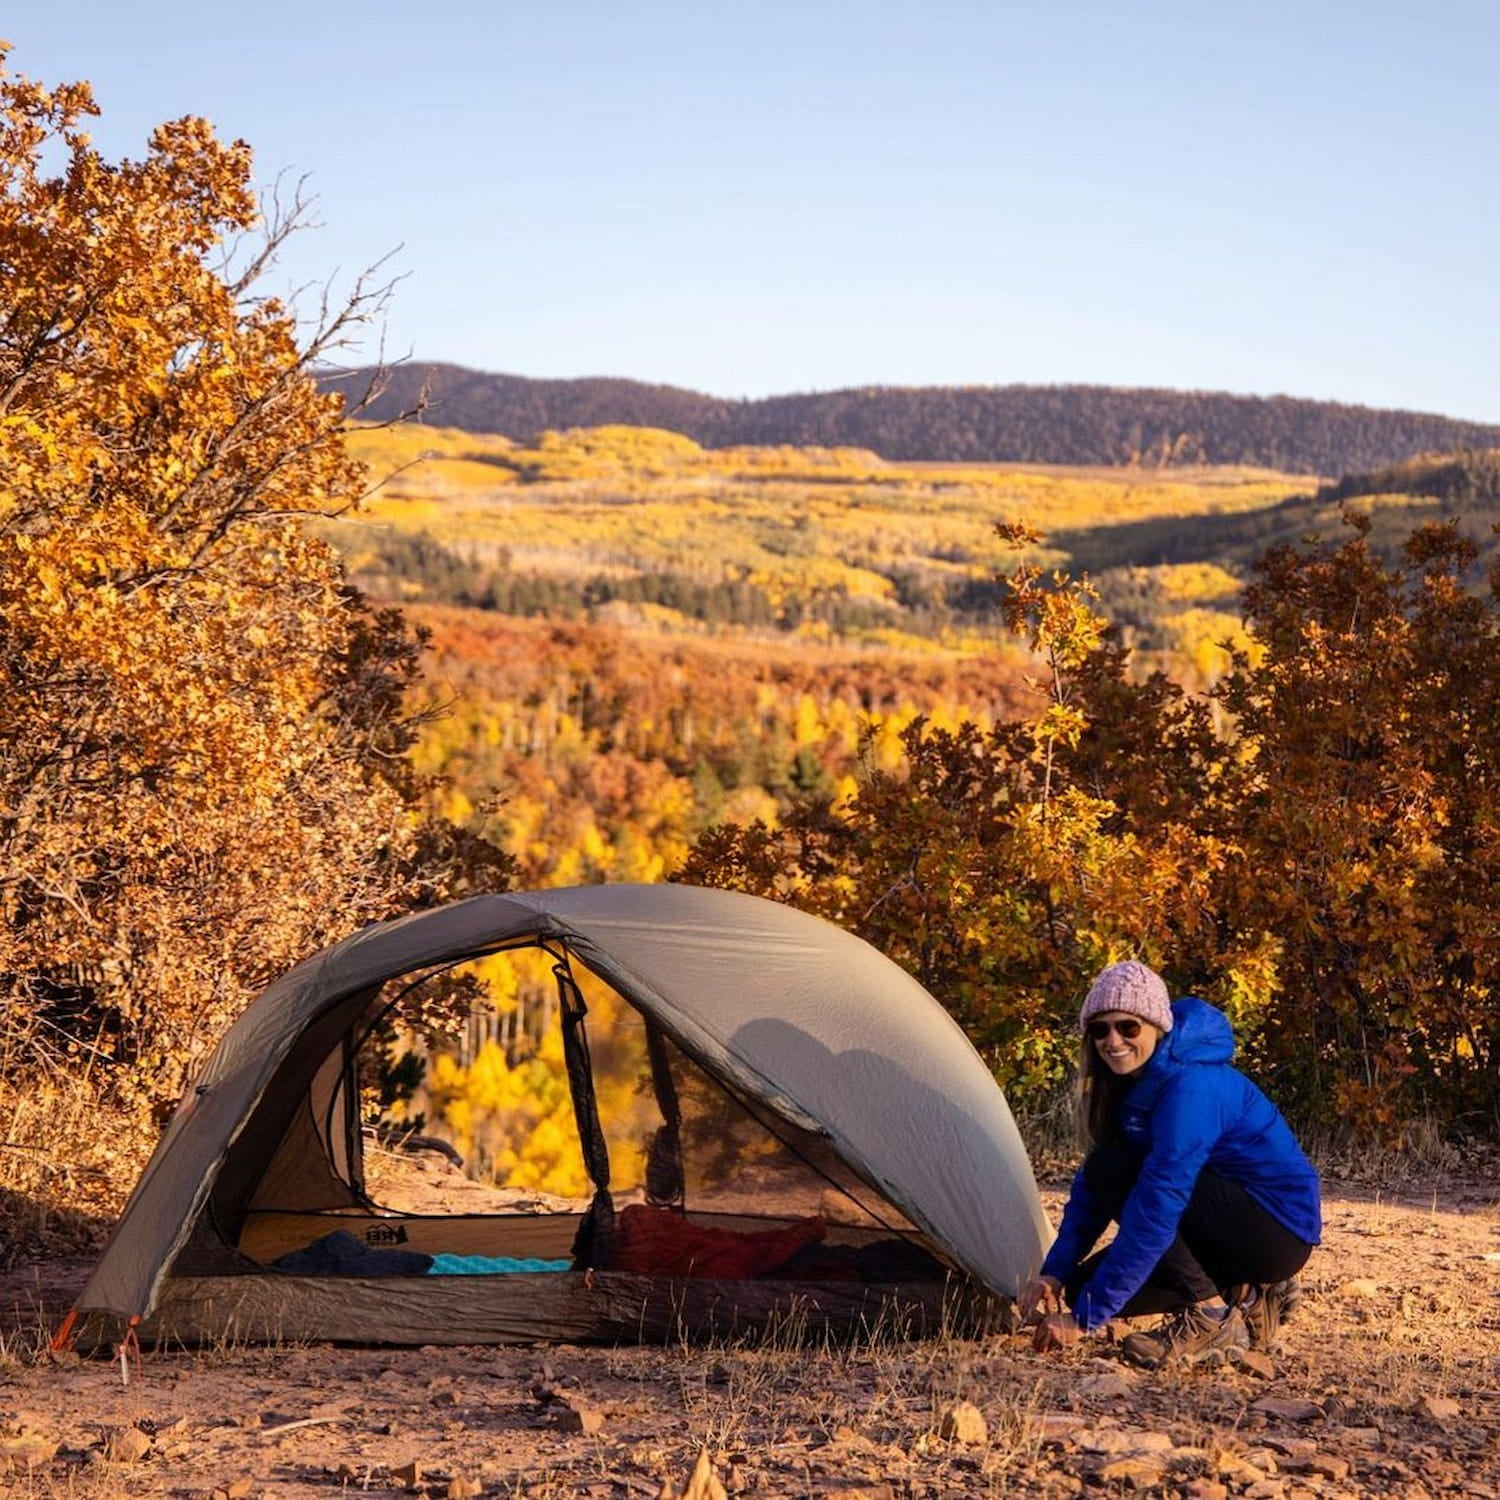 Kristin the founder of Bearfoot Theory setting up a tent in Colorado.